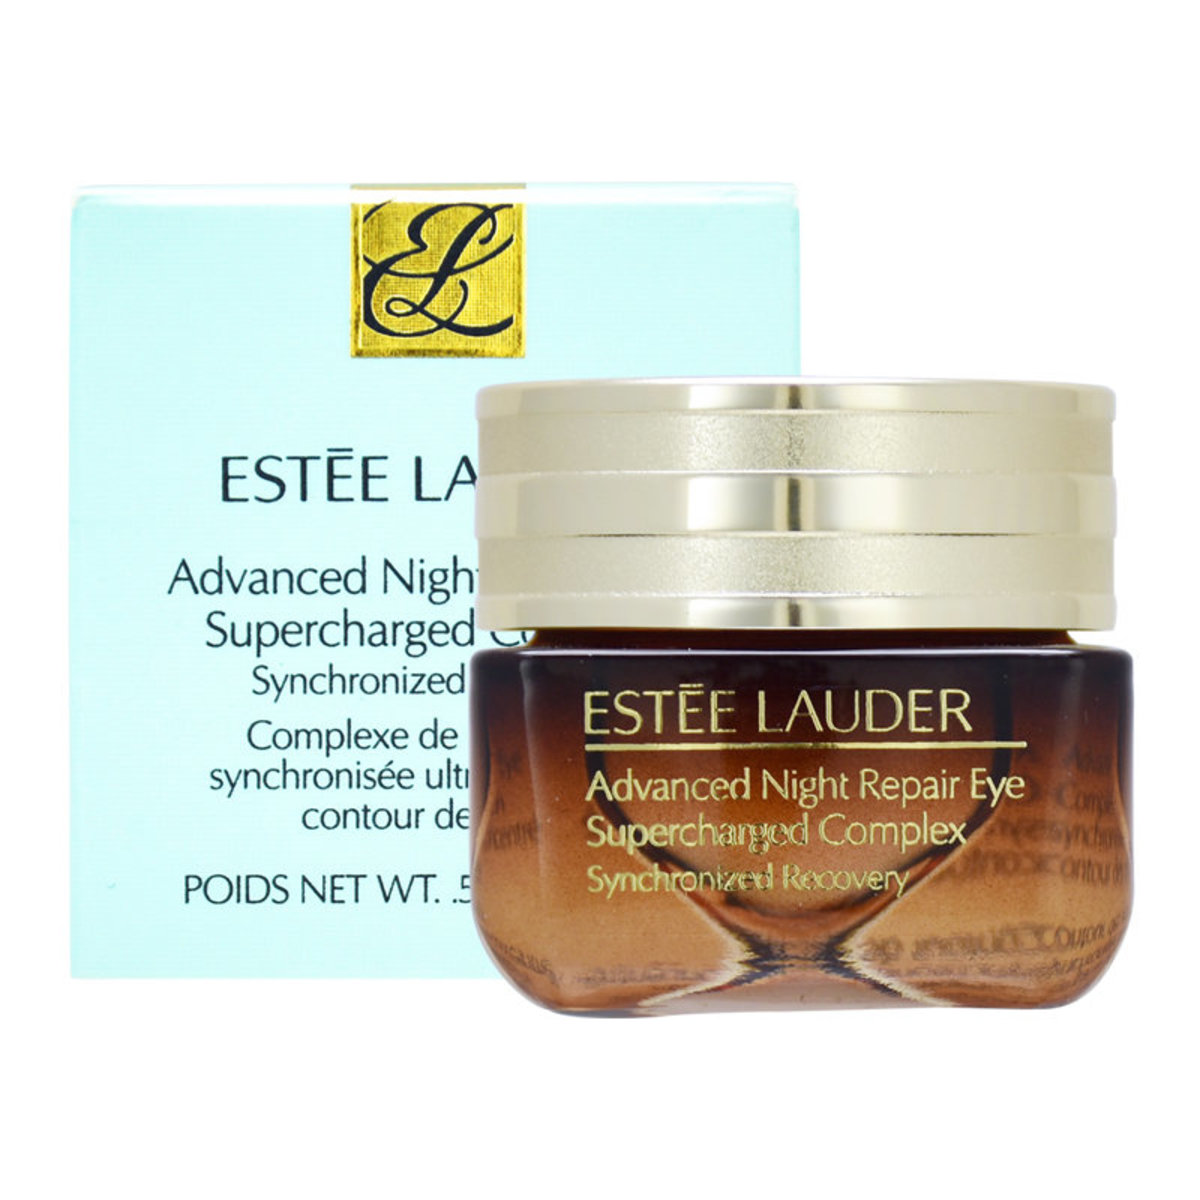 Advanced Night Repair Eye Supercharged Complex 15ml - [Parallel Import Product]